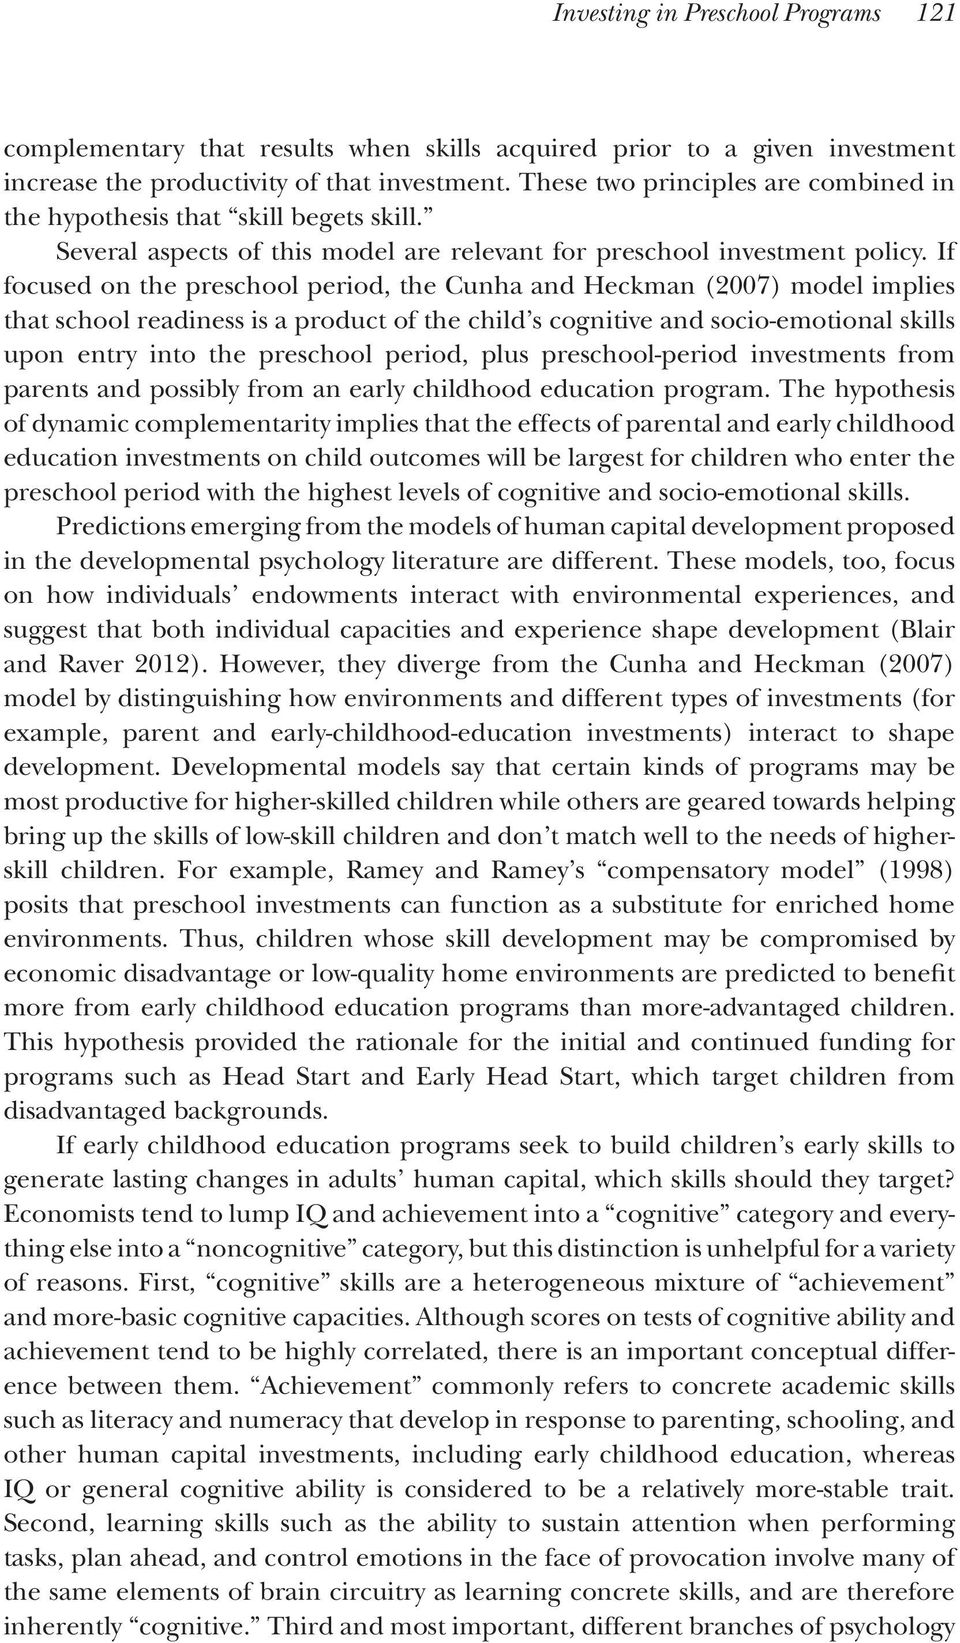 If focused on the preschool period, the Cunha and Heckman (2007) model implies that school readiness is a product of the child s cognitive and socio-emotional skills upon entry into the preschool